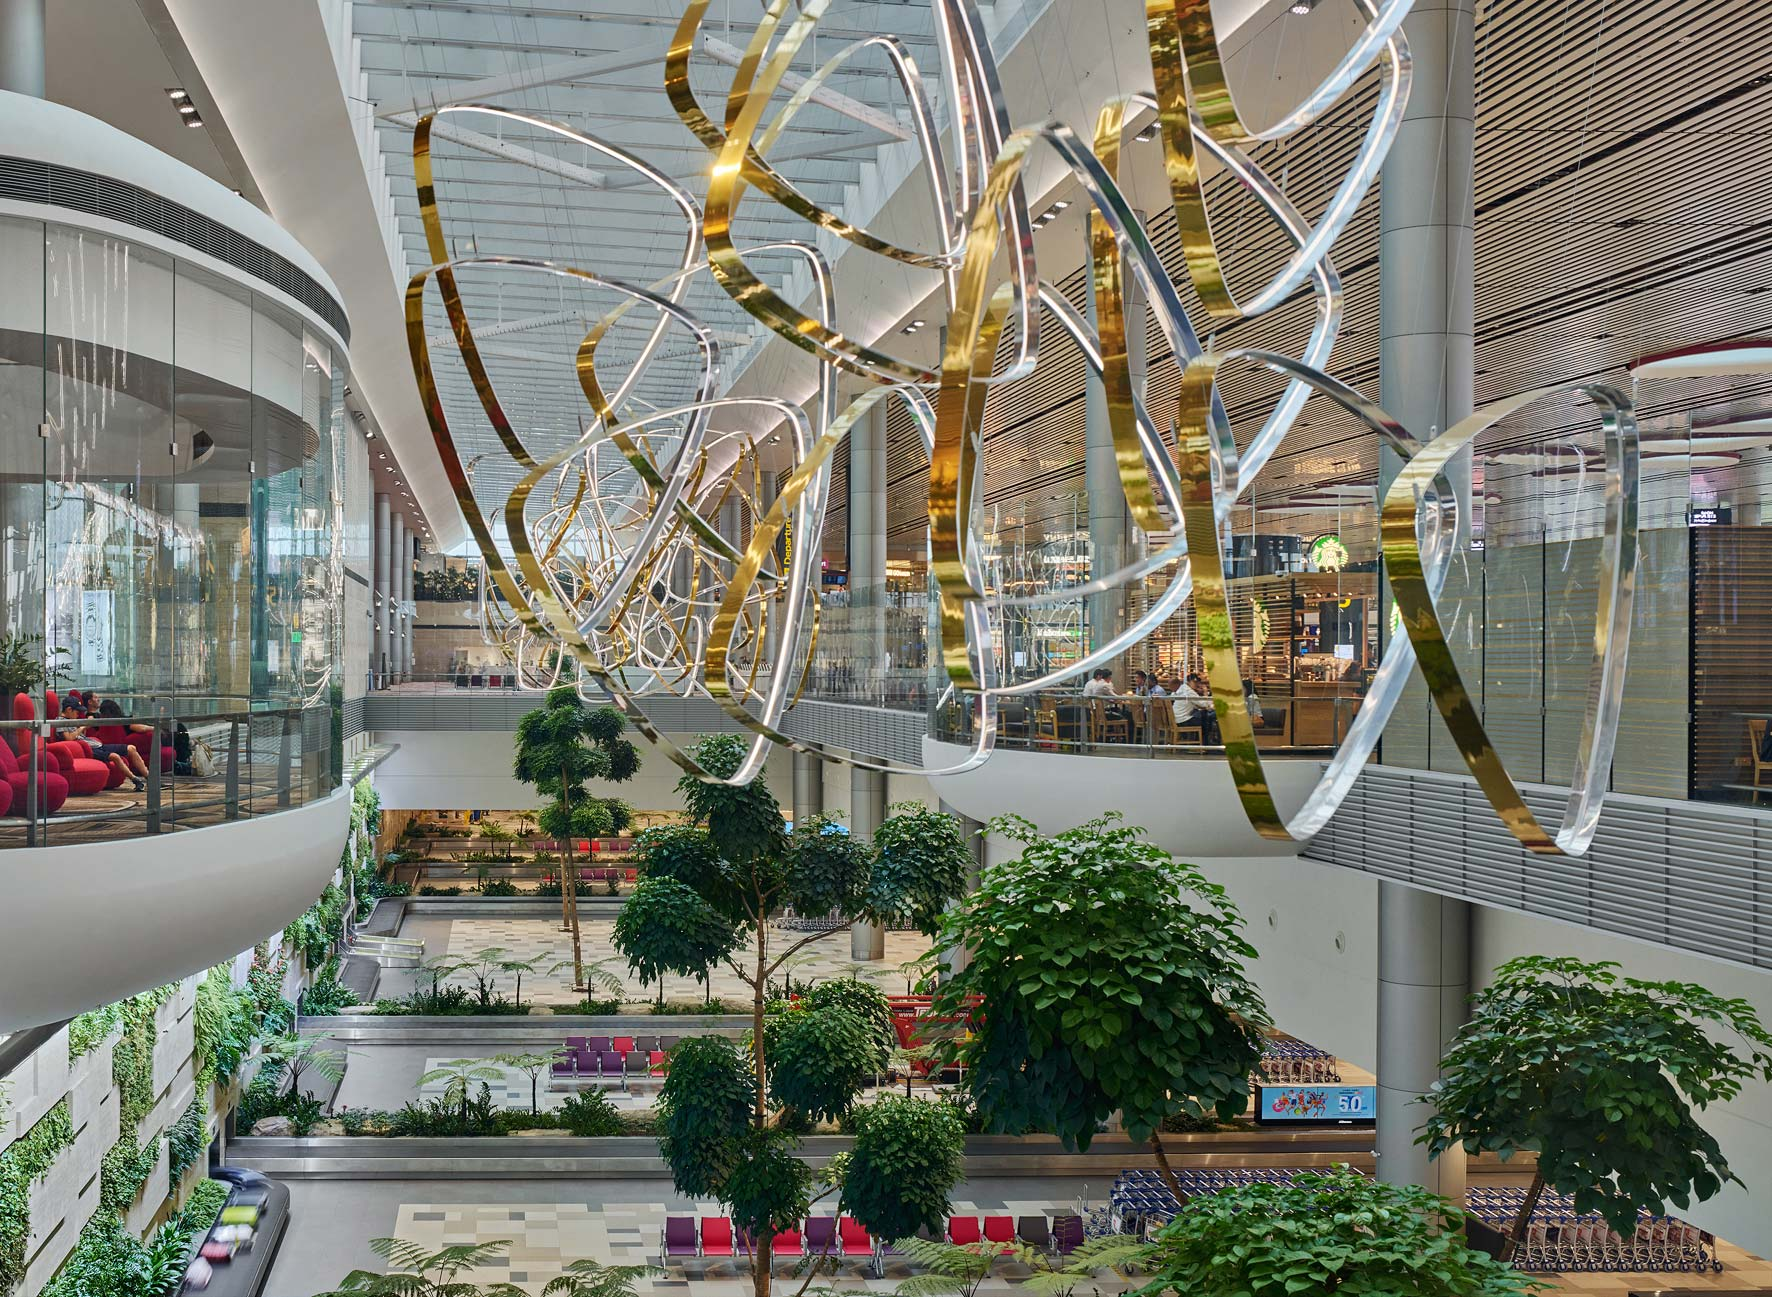 Changi Airport Terminal 4, Singapore. Architectural photographer Asia